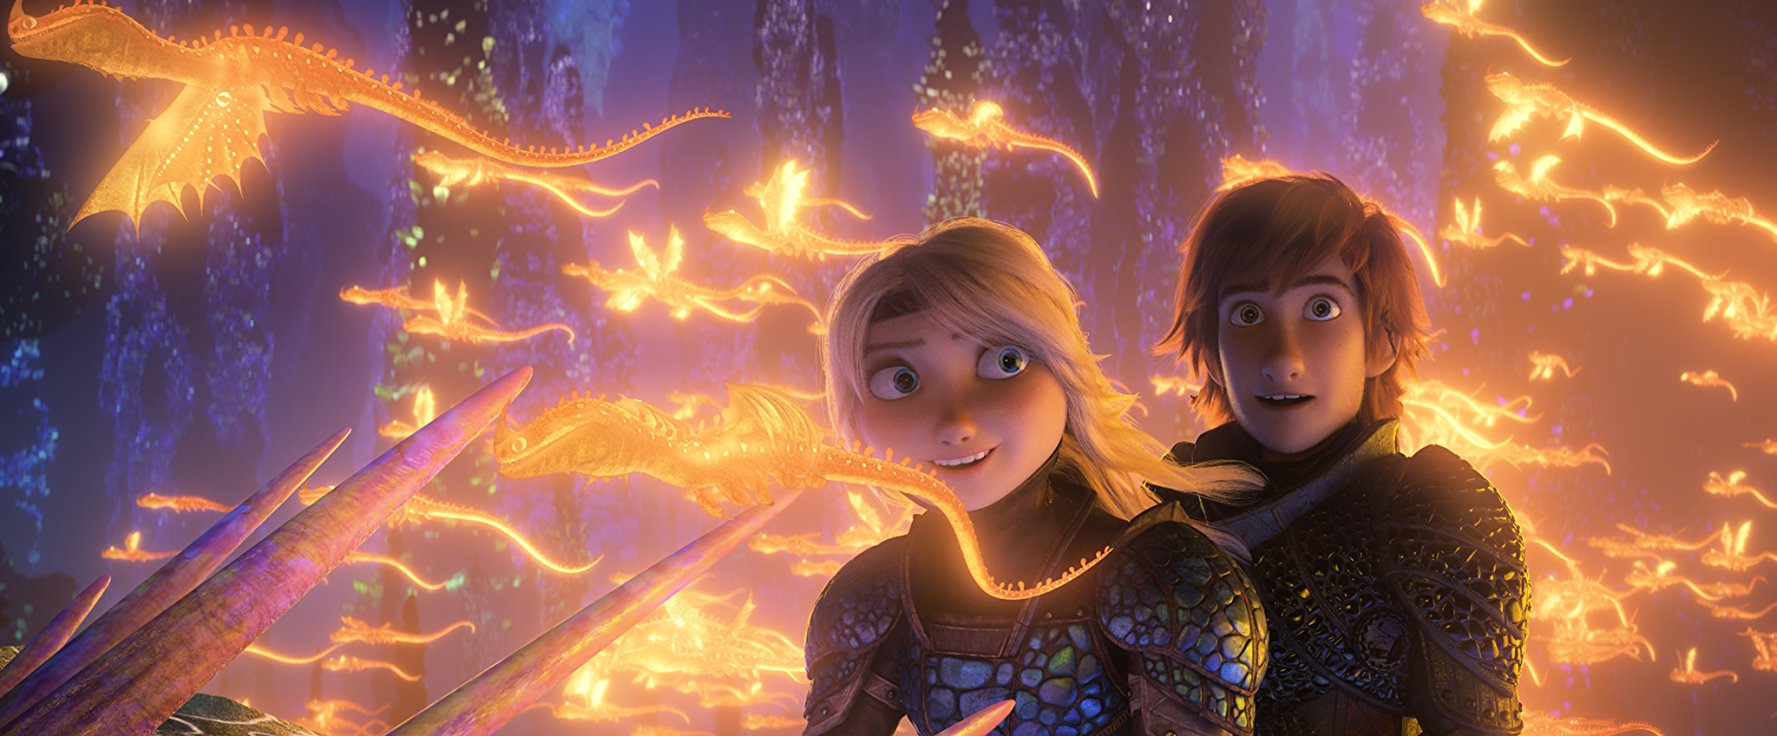 Hiccup Horrendous and Astrid Hofferson - Dragon Trainer The hidden world